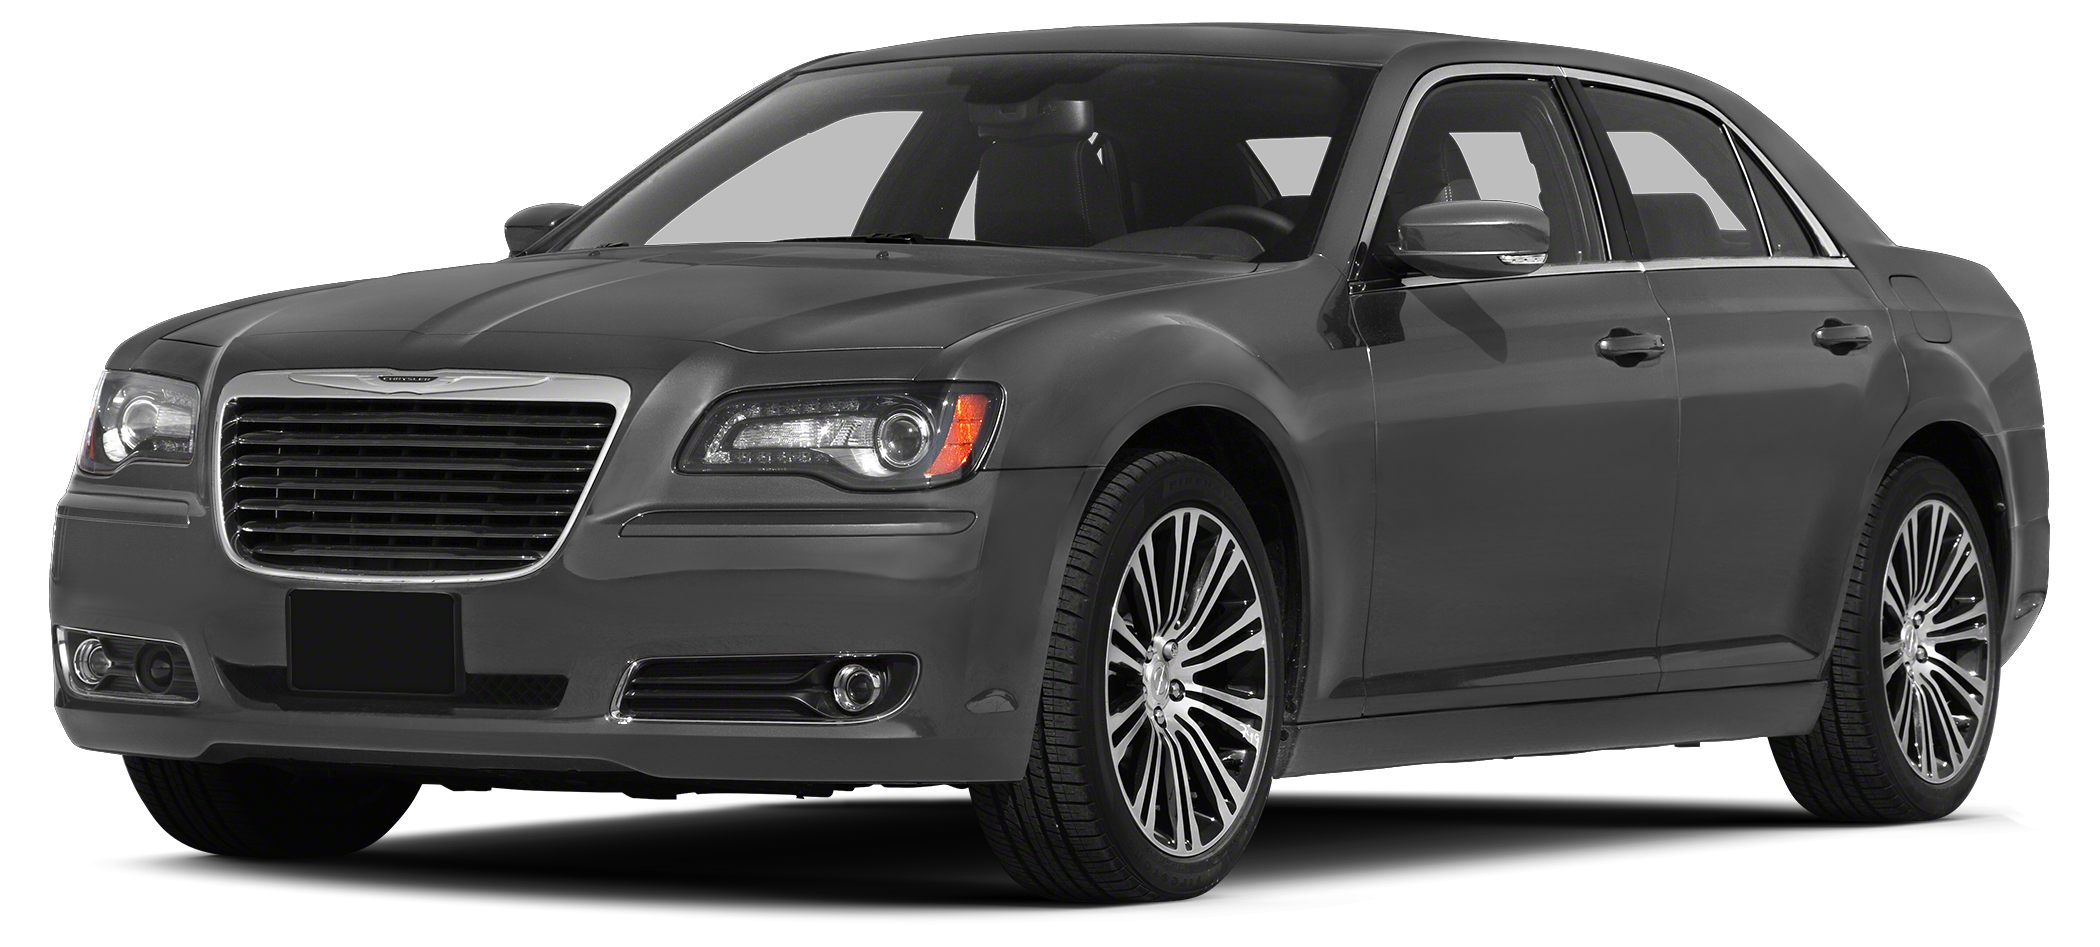 2013 Chrysler 300 S Get Hooked On David Stanley Norman Chrysler Jeep Dodge Right car Right price